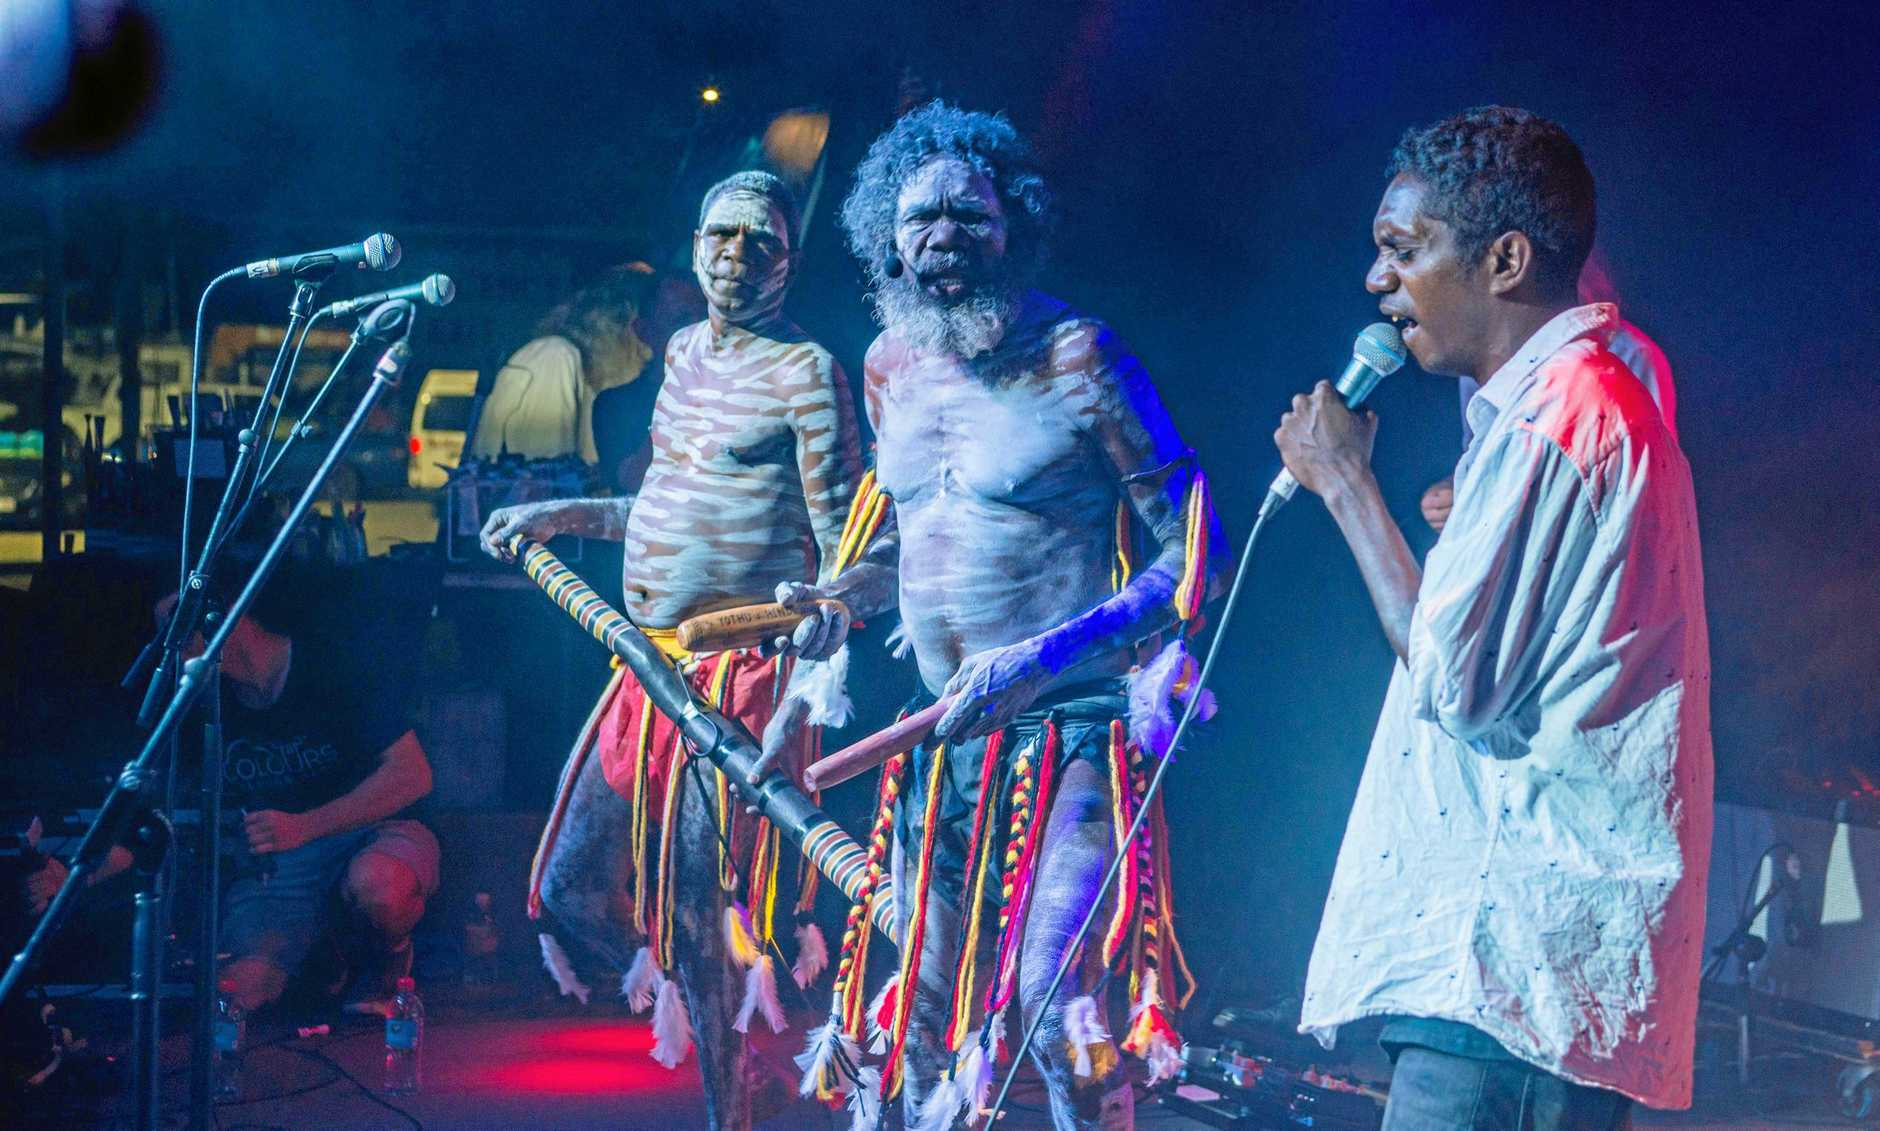 Yothu Yindi perform at the 2019 Airlie Beach Festival of Music. PHOTO: Andrew Pattinson / Vampp Photography